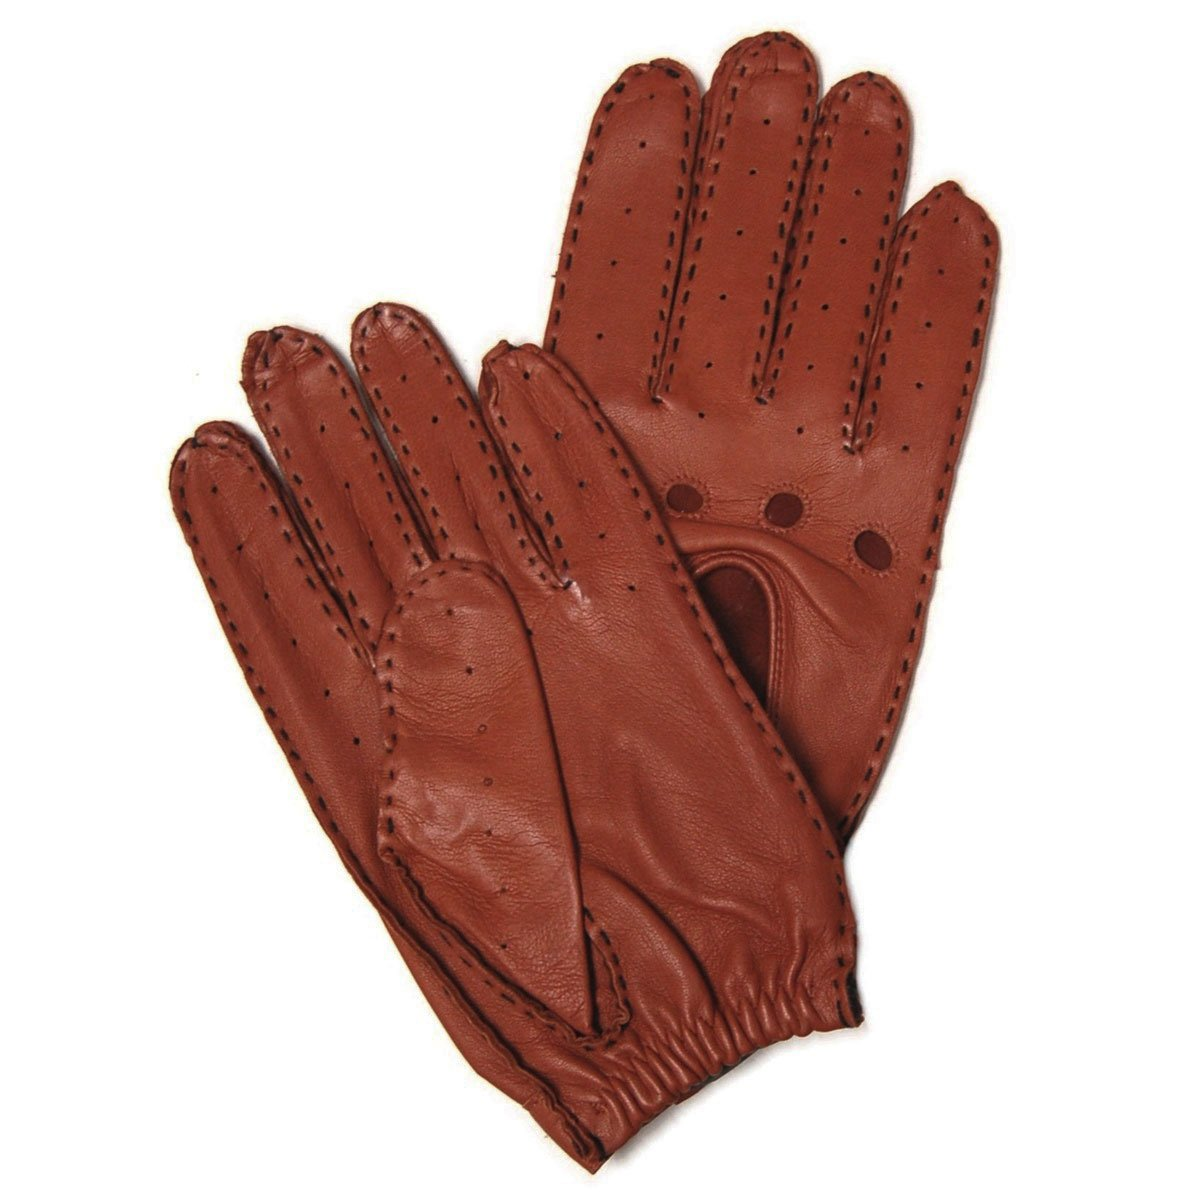 Hilts-Willard Men's Leather Driving Gloves - M - Brown